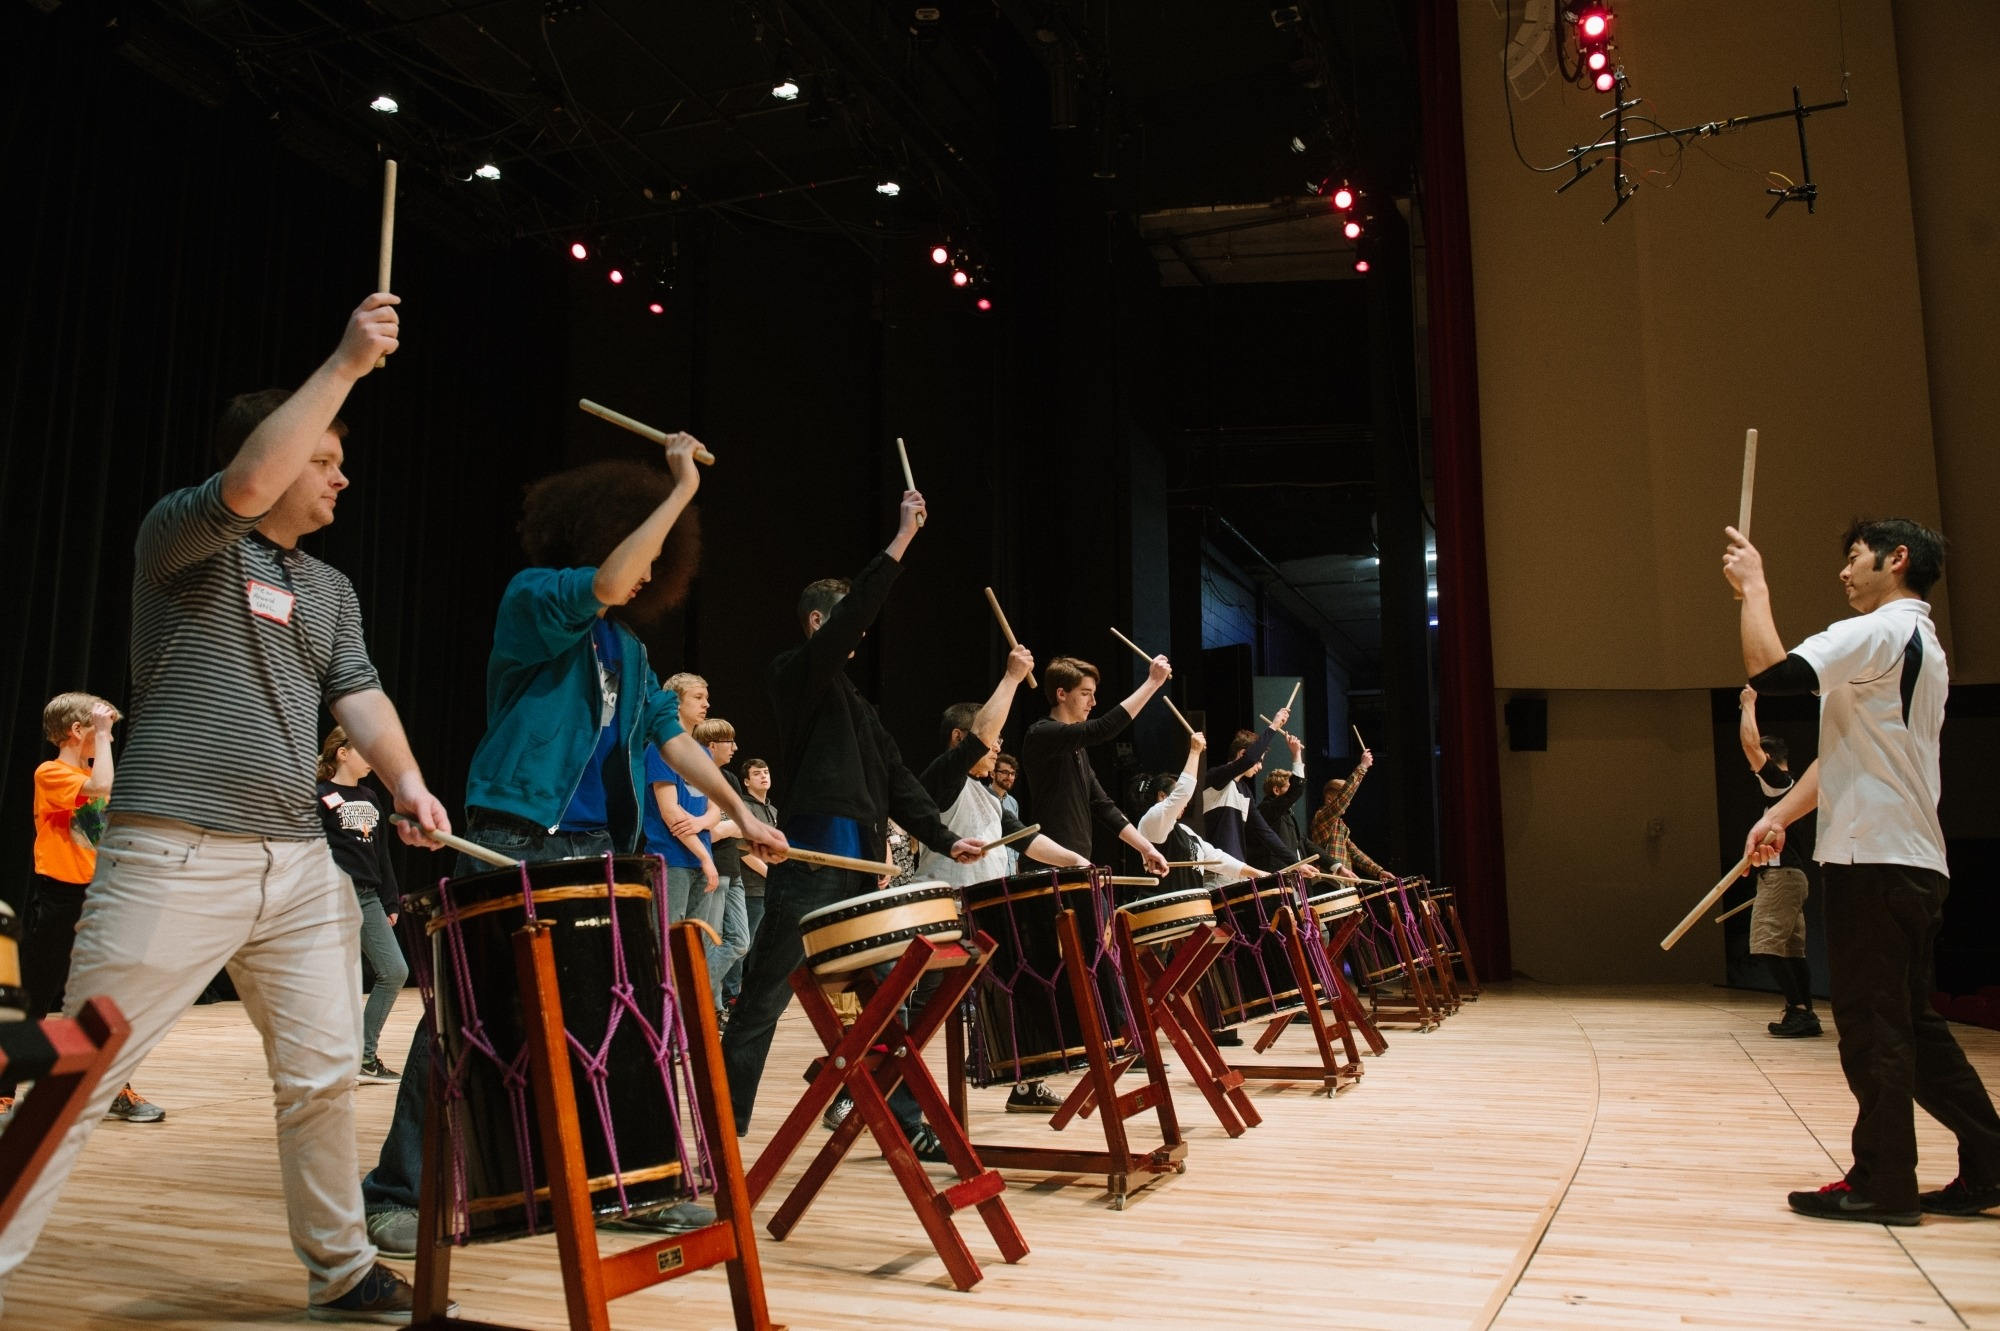 Image of a Taiko drummer leading community members in front of drums with right hands holding a drumstick in the air during a drumming master class